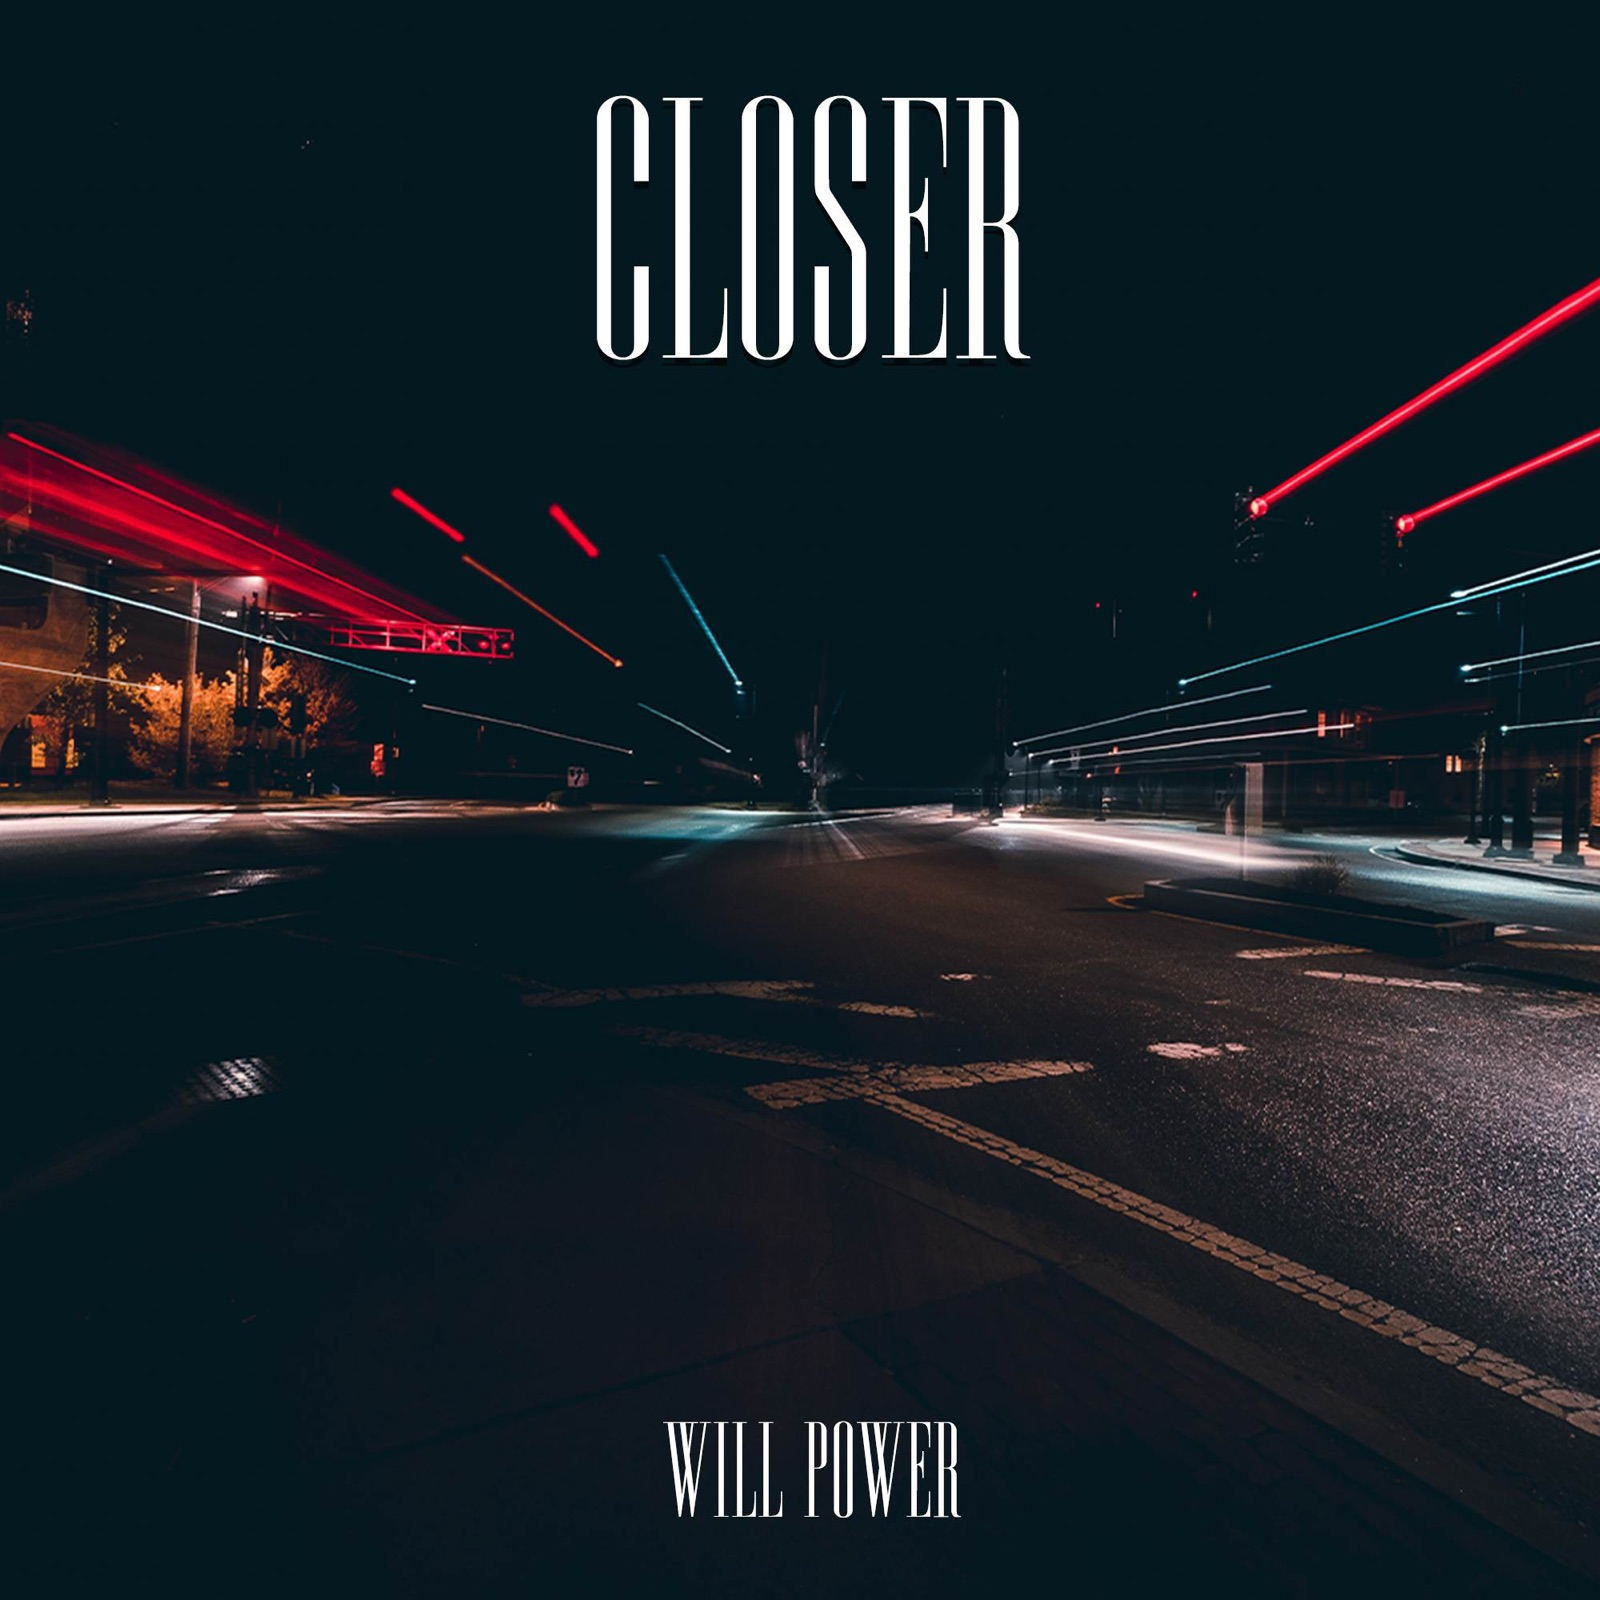 Will Power (Closer - EP)